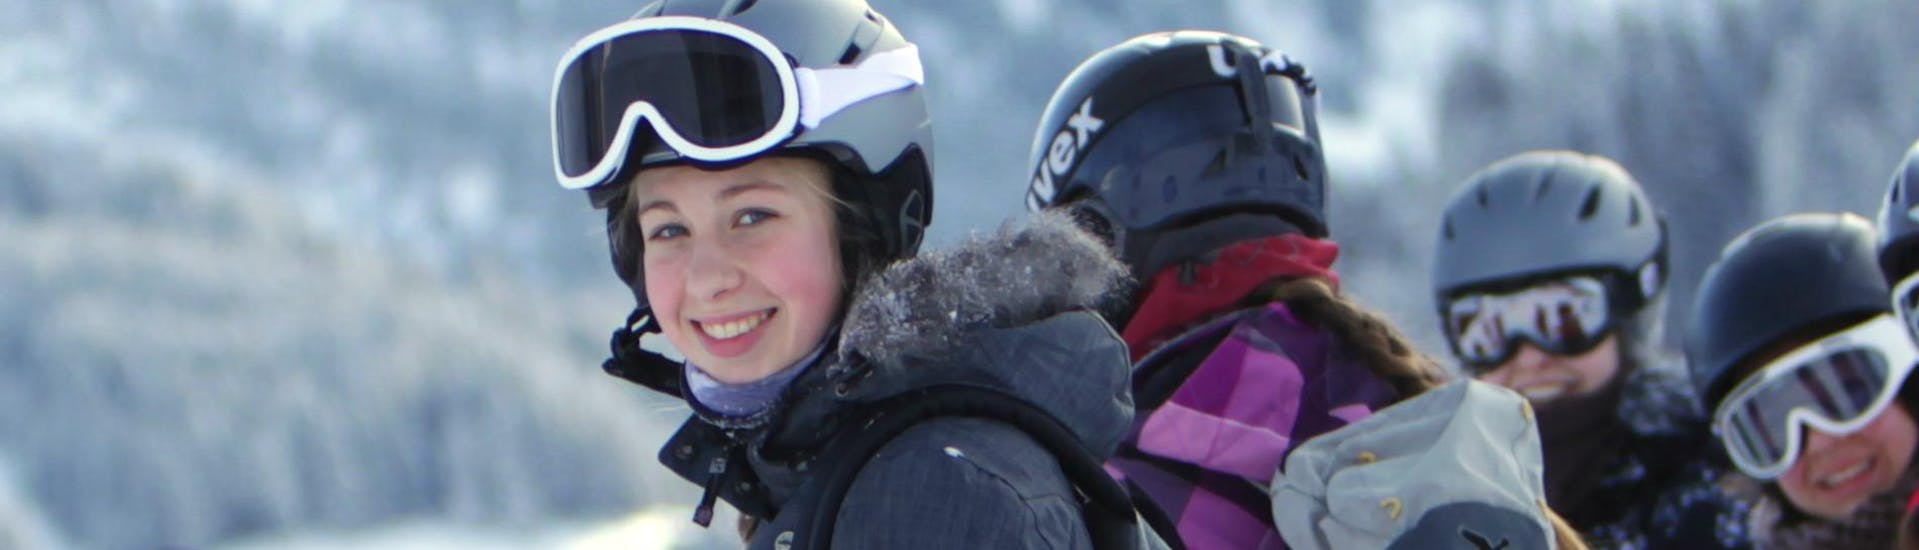 Ski Lessons for Teens (13-15 years) - All Levels